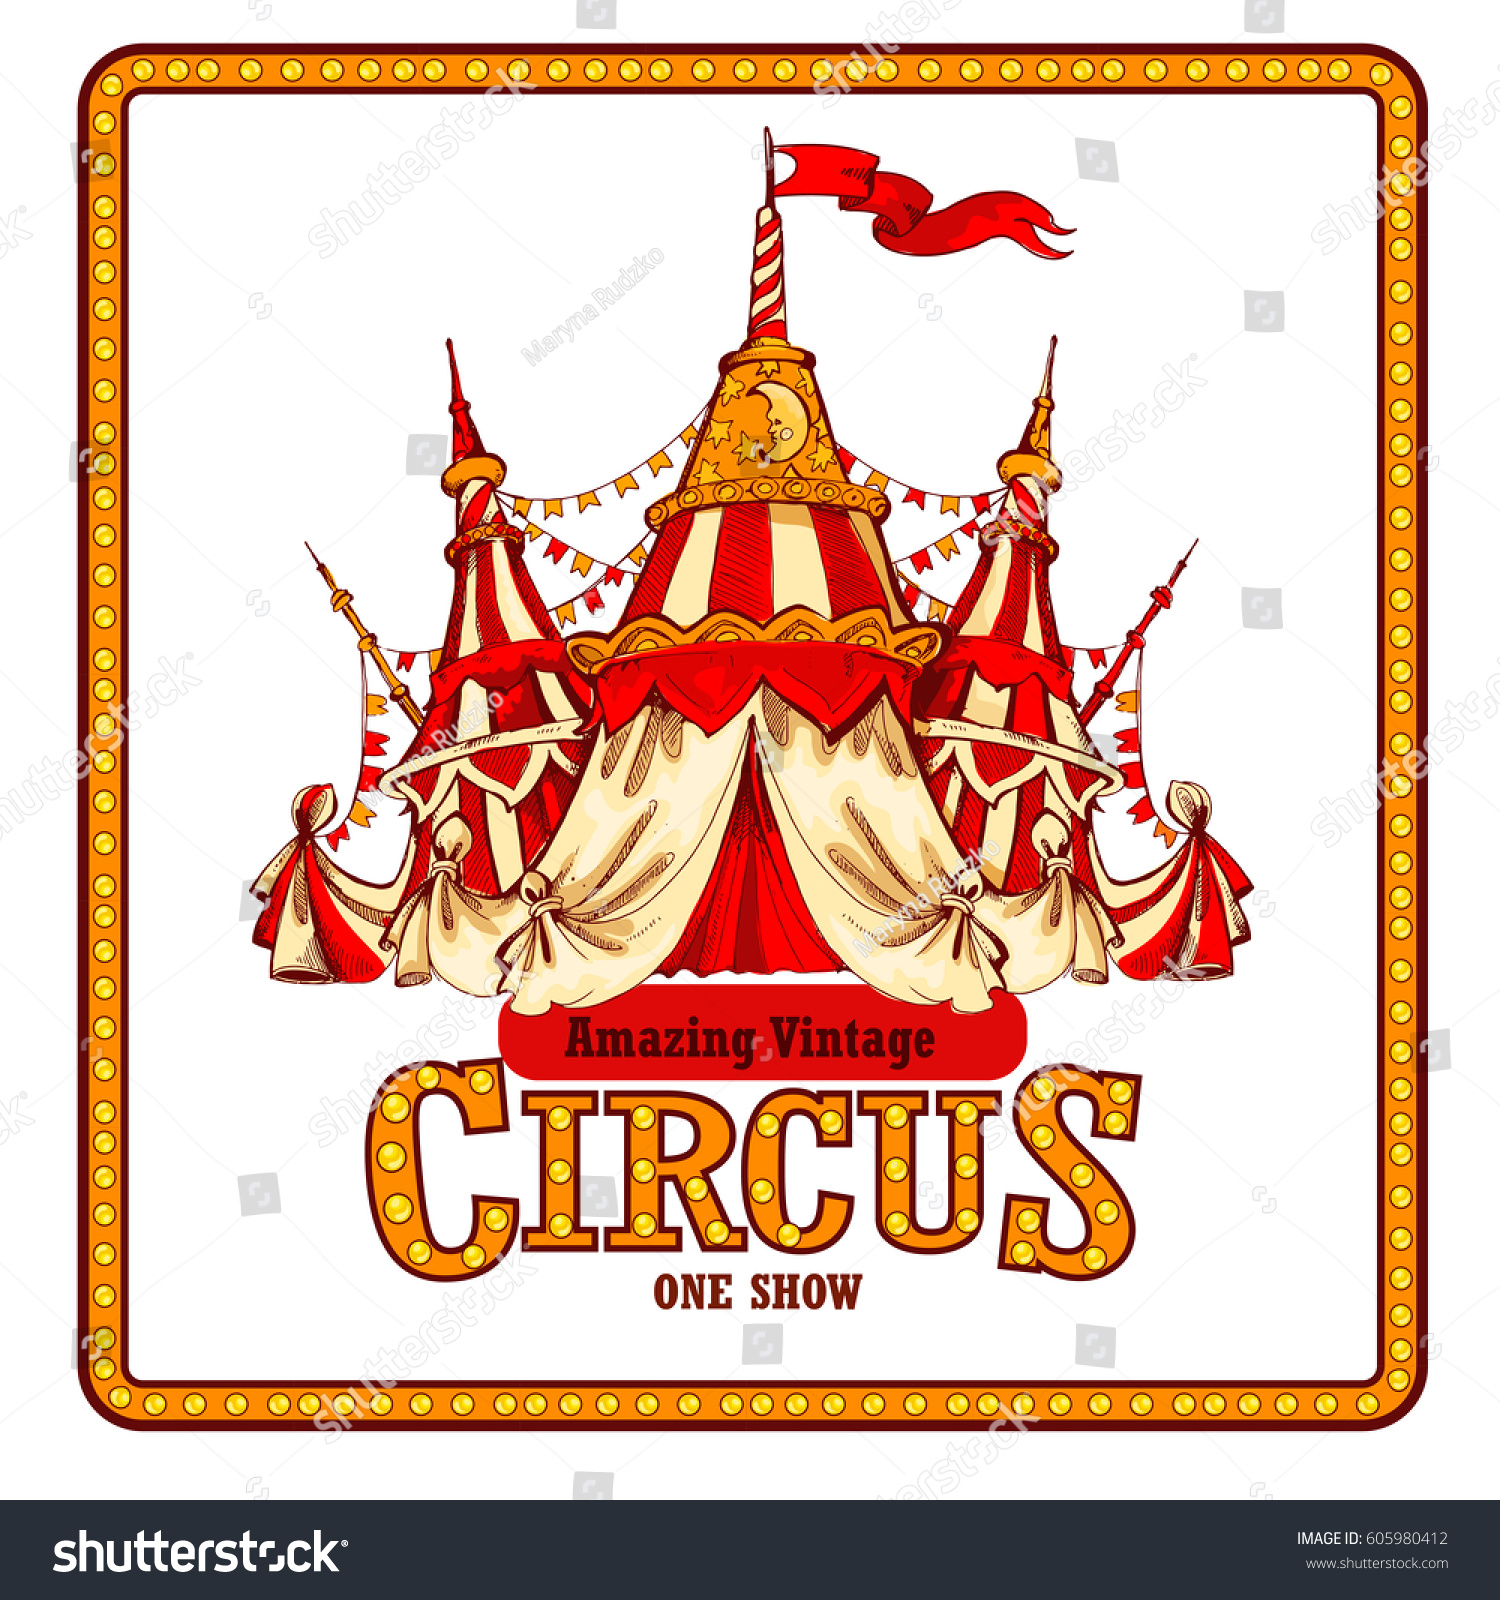 Amazing Vintage Circus Show Detailed poster. Colored Sketch composition.  Circus red and white Circus